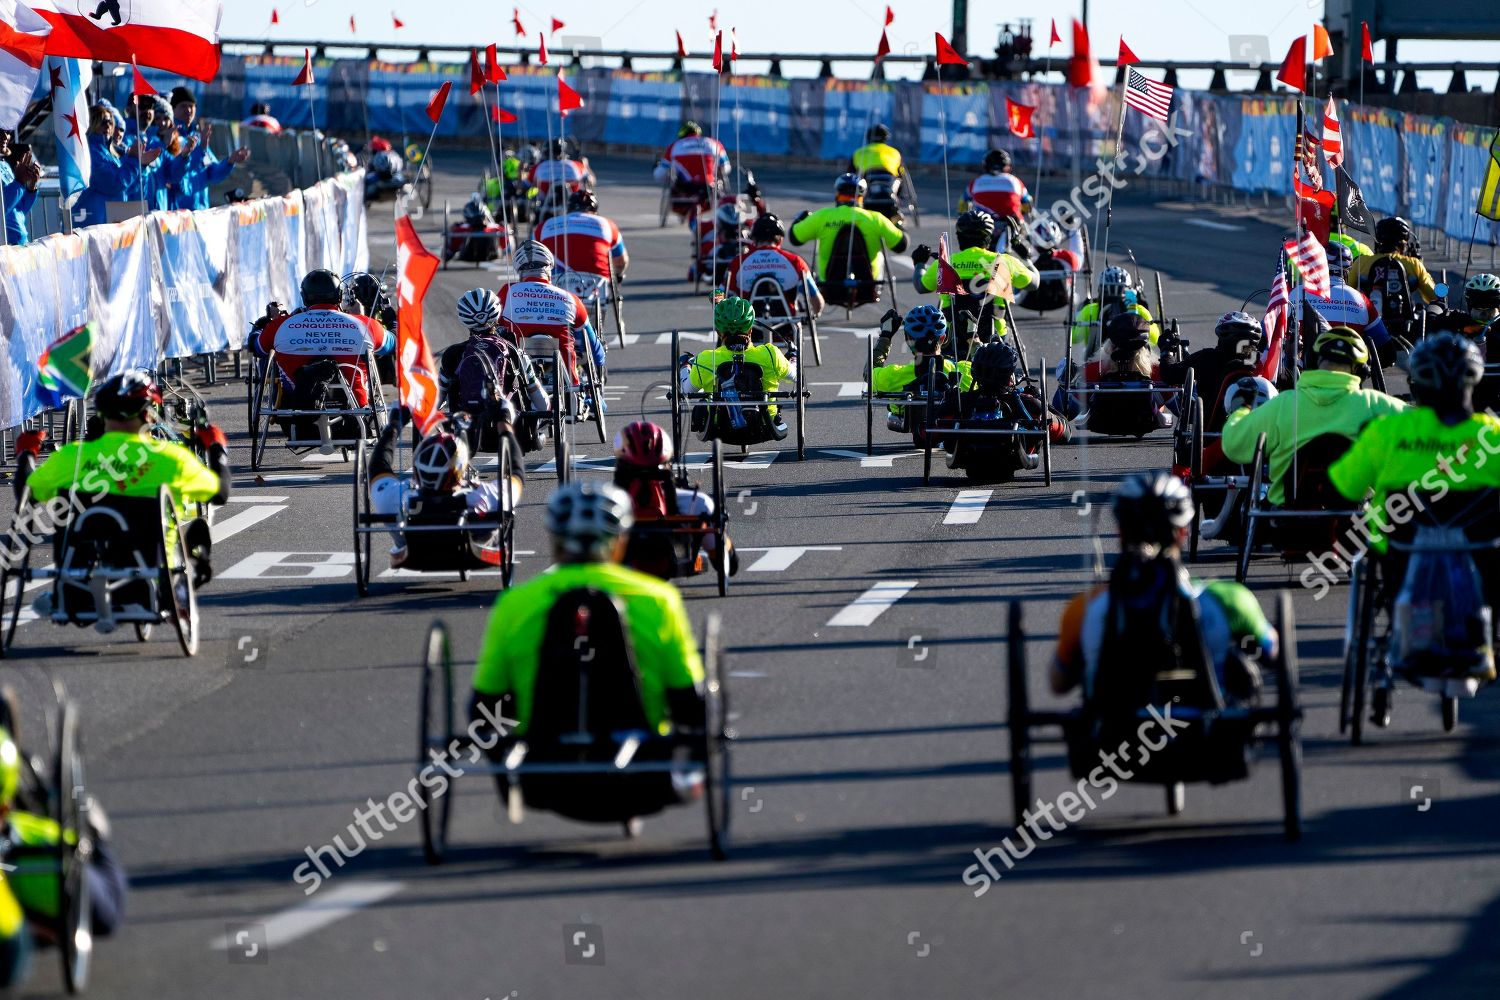 Competitors handcycle division leave starting line during